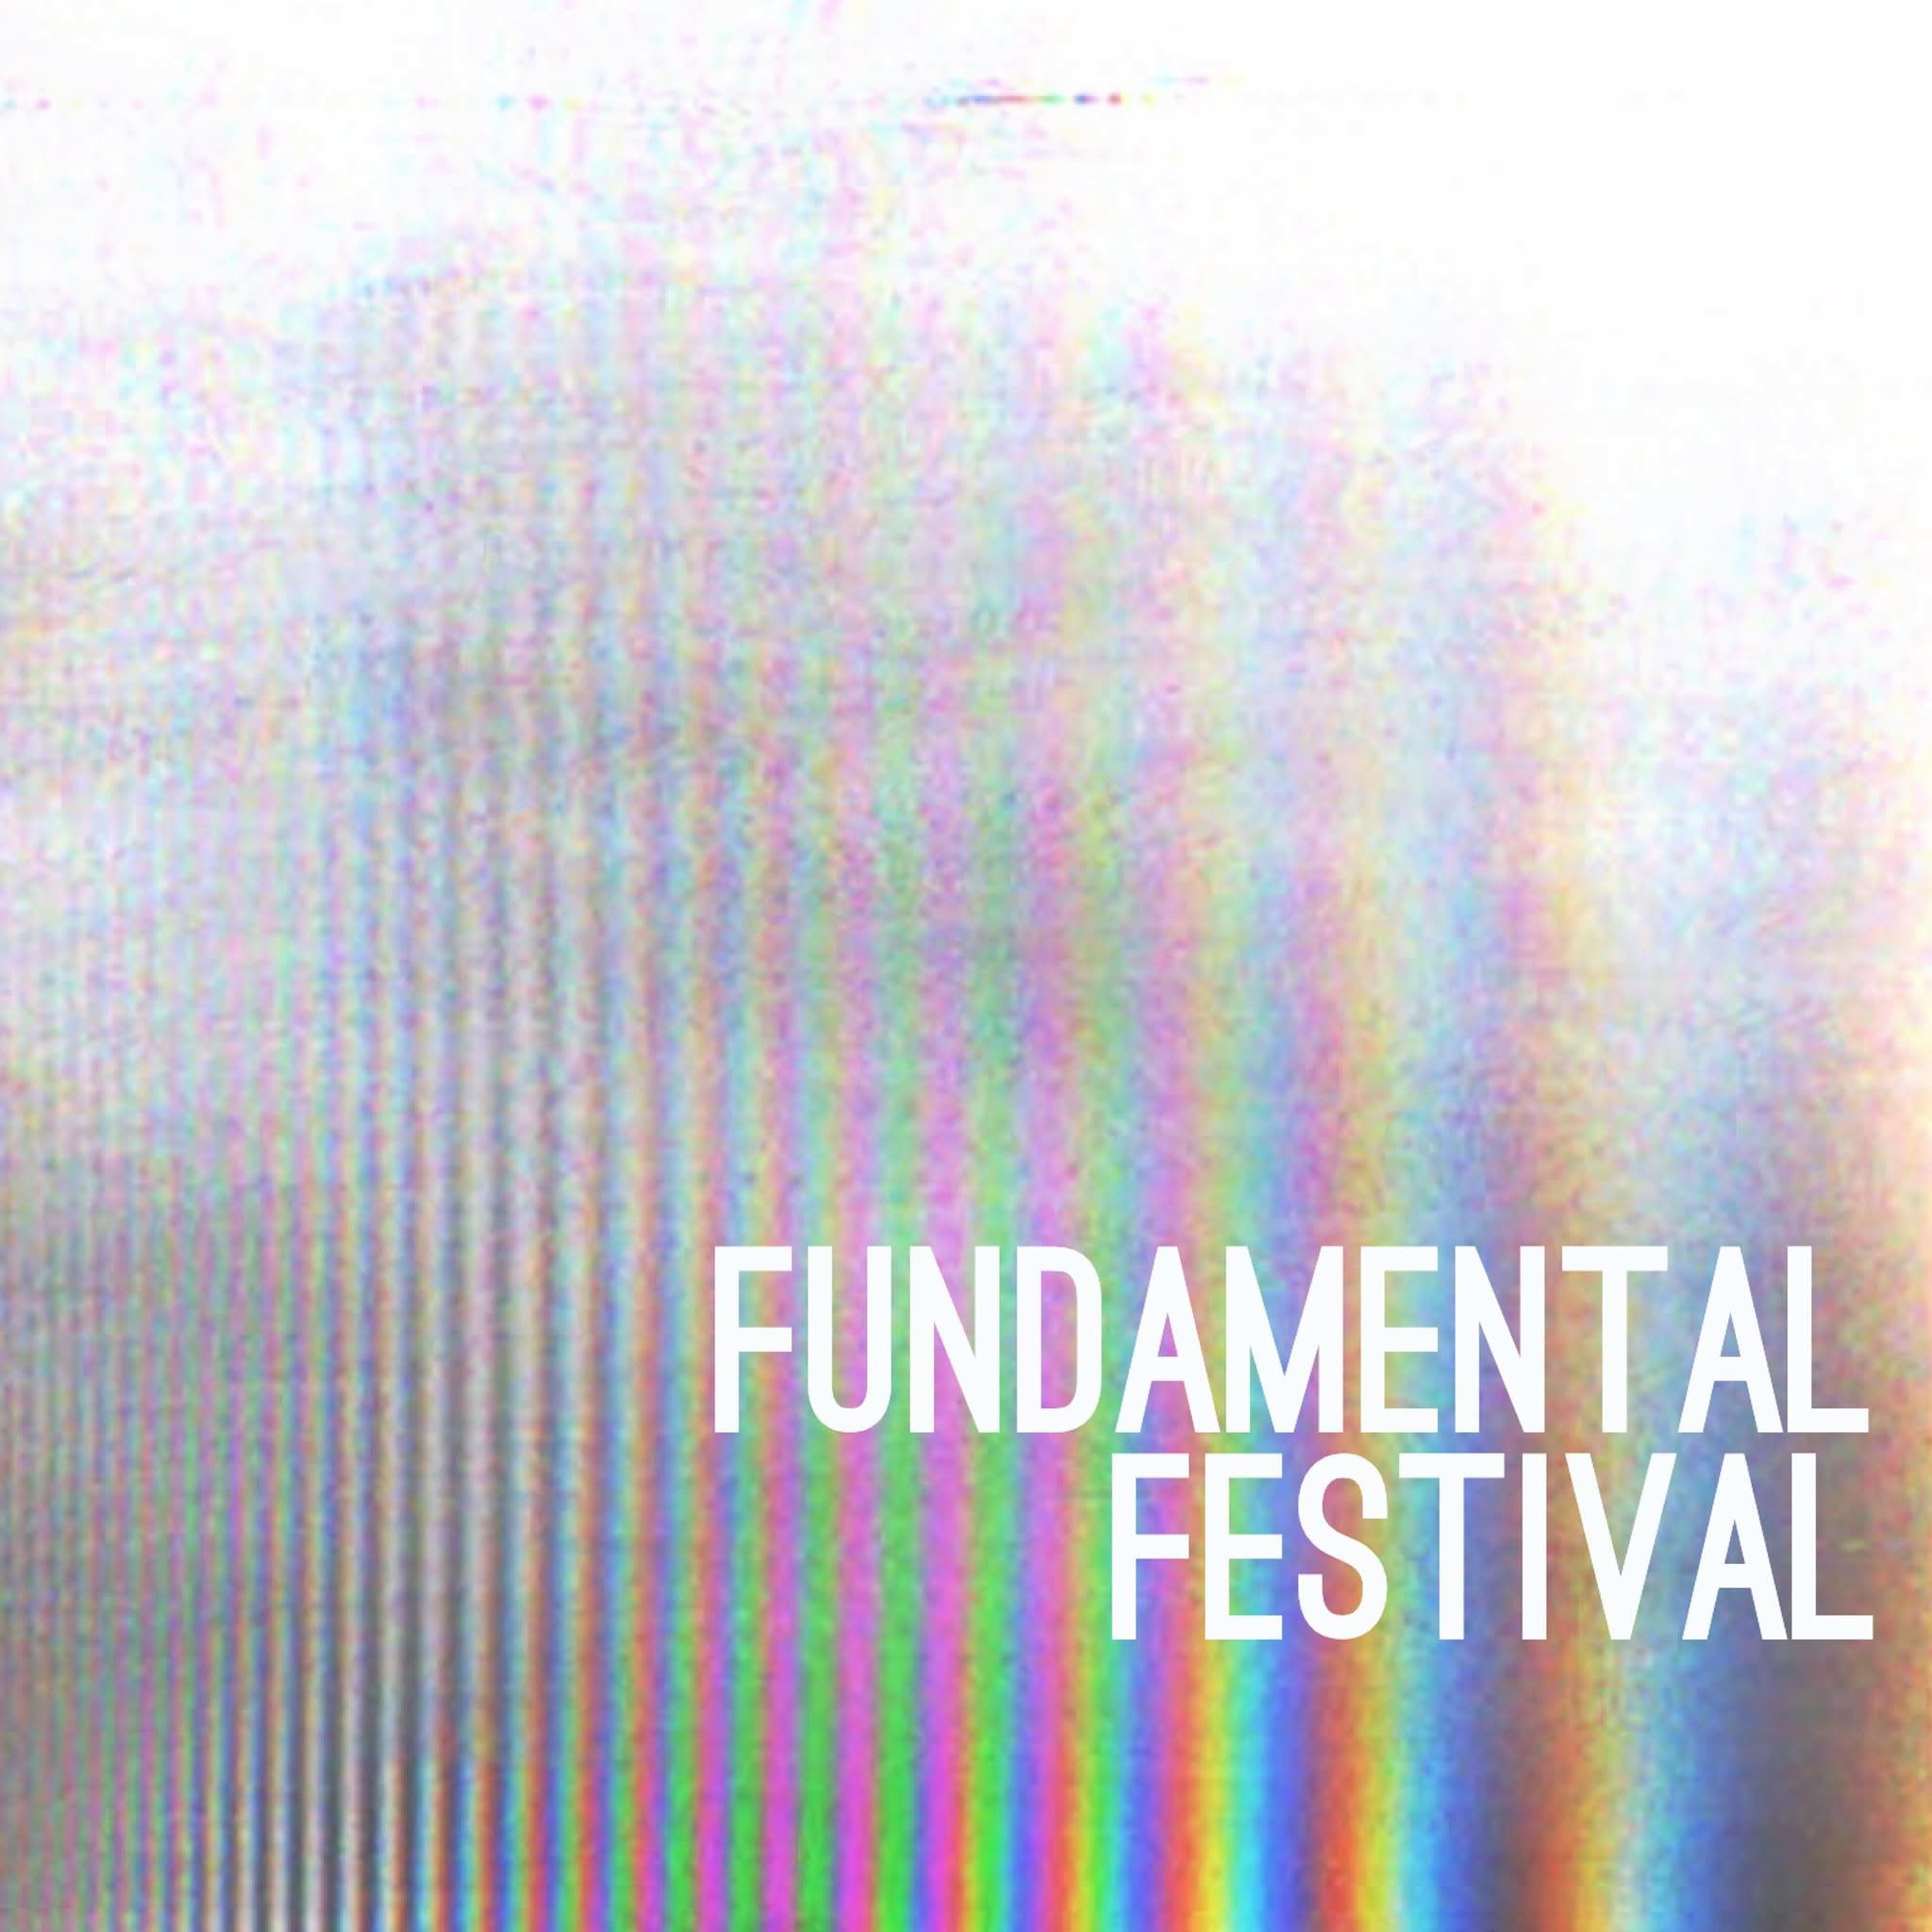 Announcing Fundamental Festival: The Intersection of New Music and Sound Art